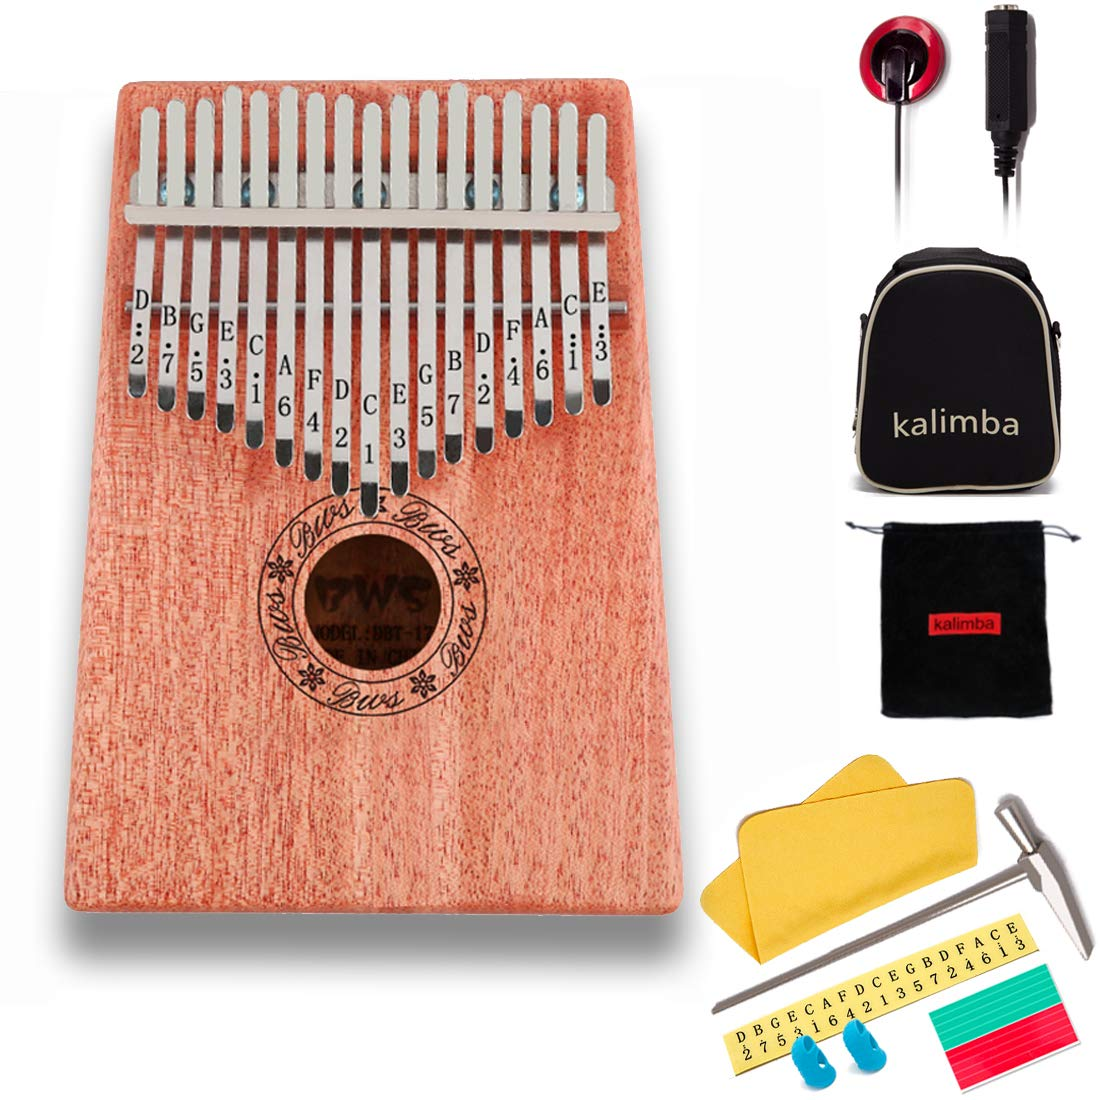 17 Keys Kalimba Thumb Piano Mbira Sanza Mahogany Body, with Multifunctional pickupsand Tune Hammer, for Beginners and Advanced Players